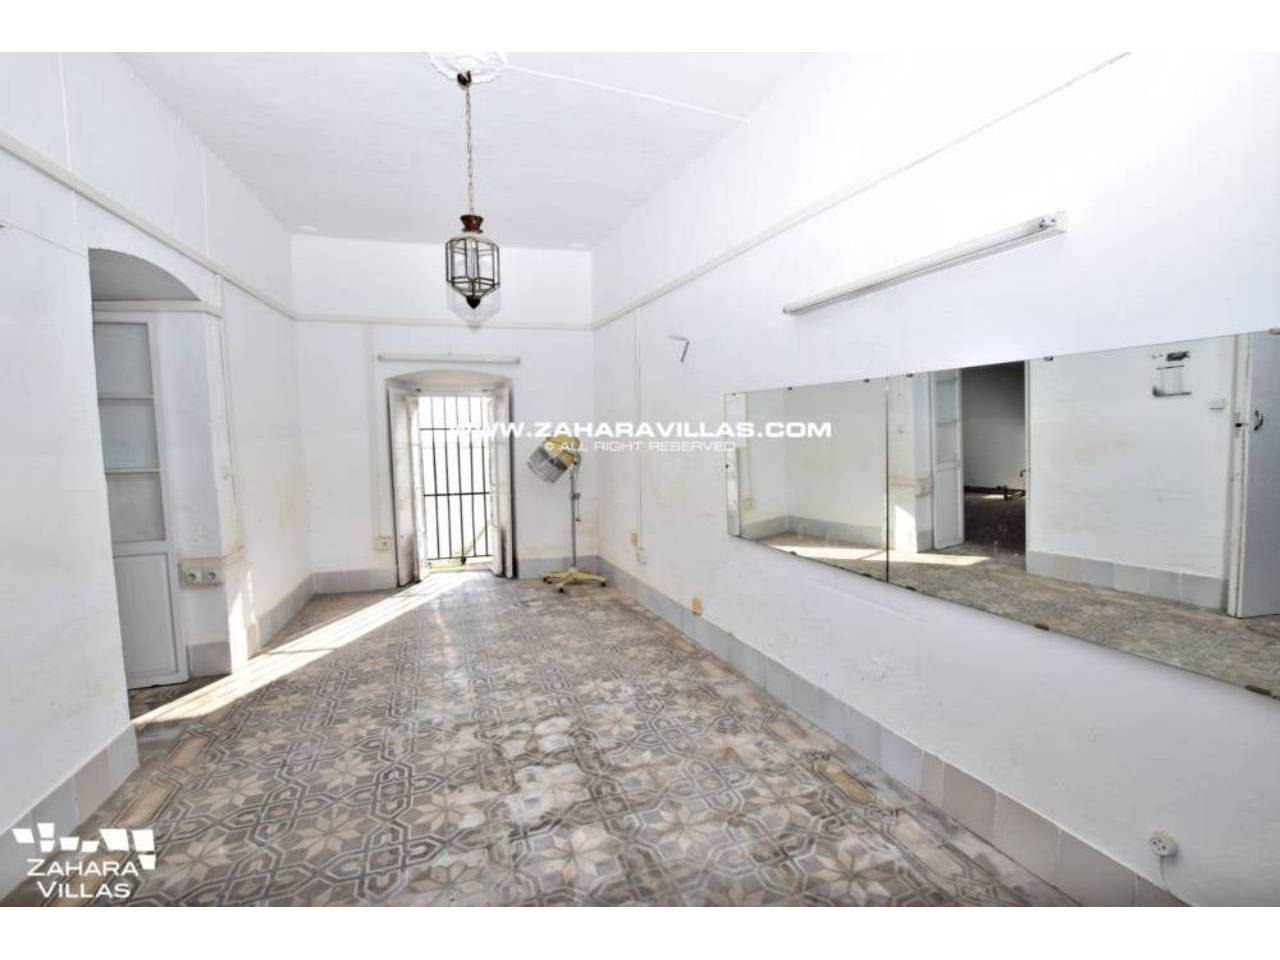 Imagen 6 de Fabulous house, ripe for refurbishment, in the centre of Vejer de la Frontera.